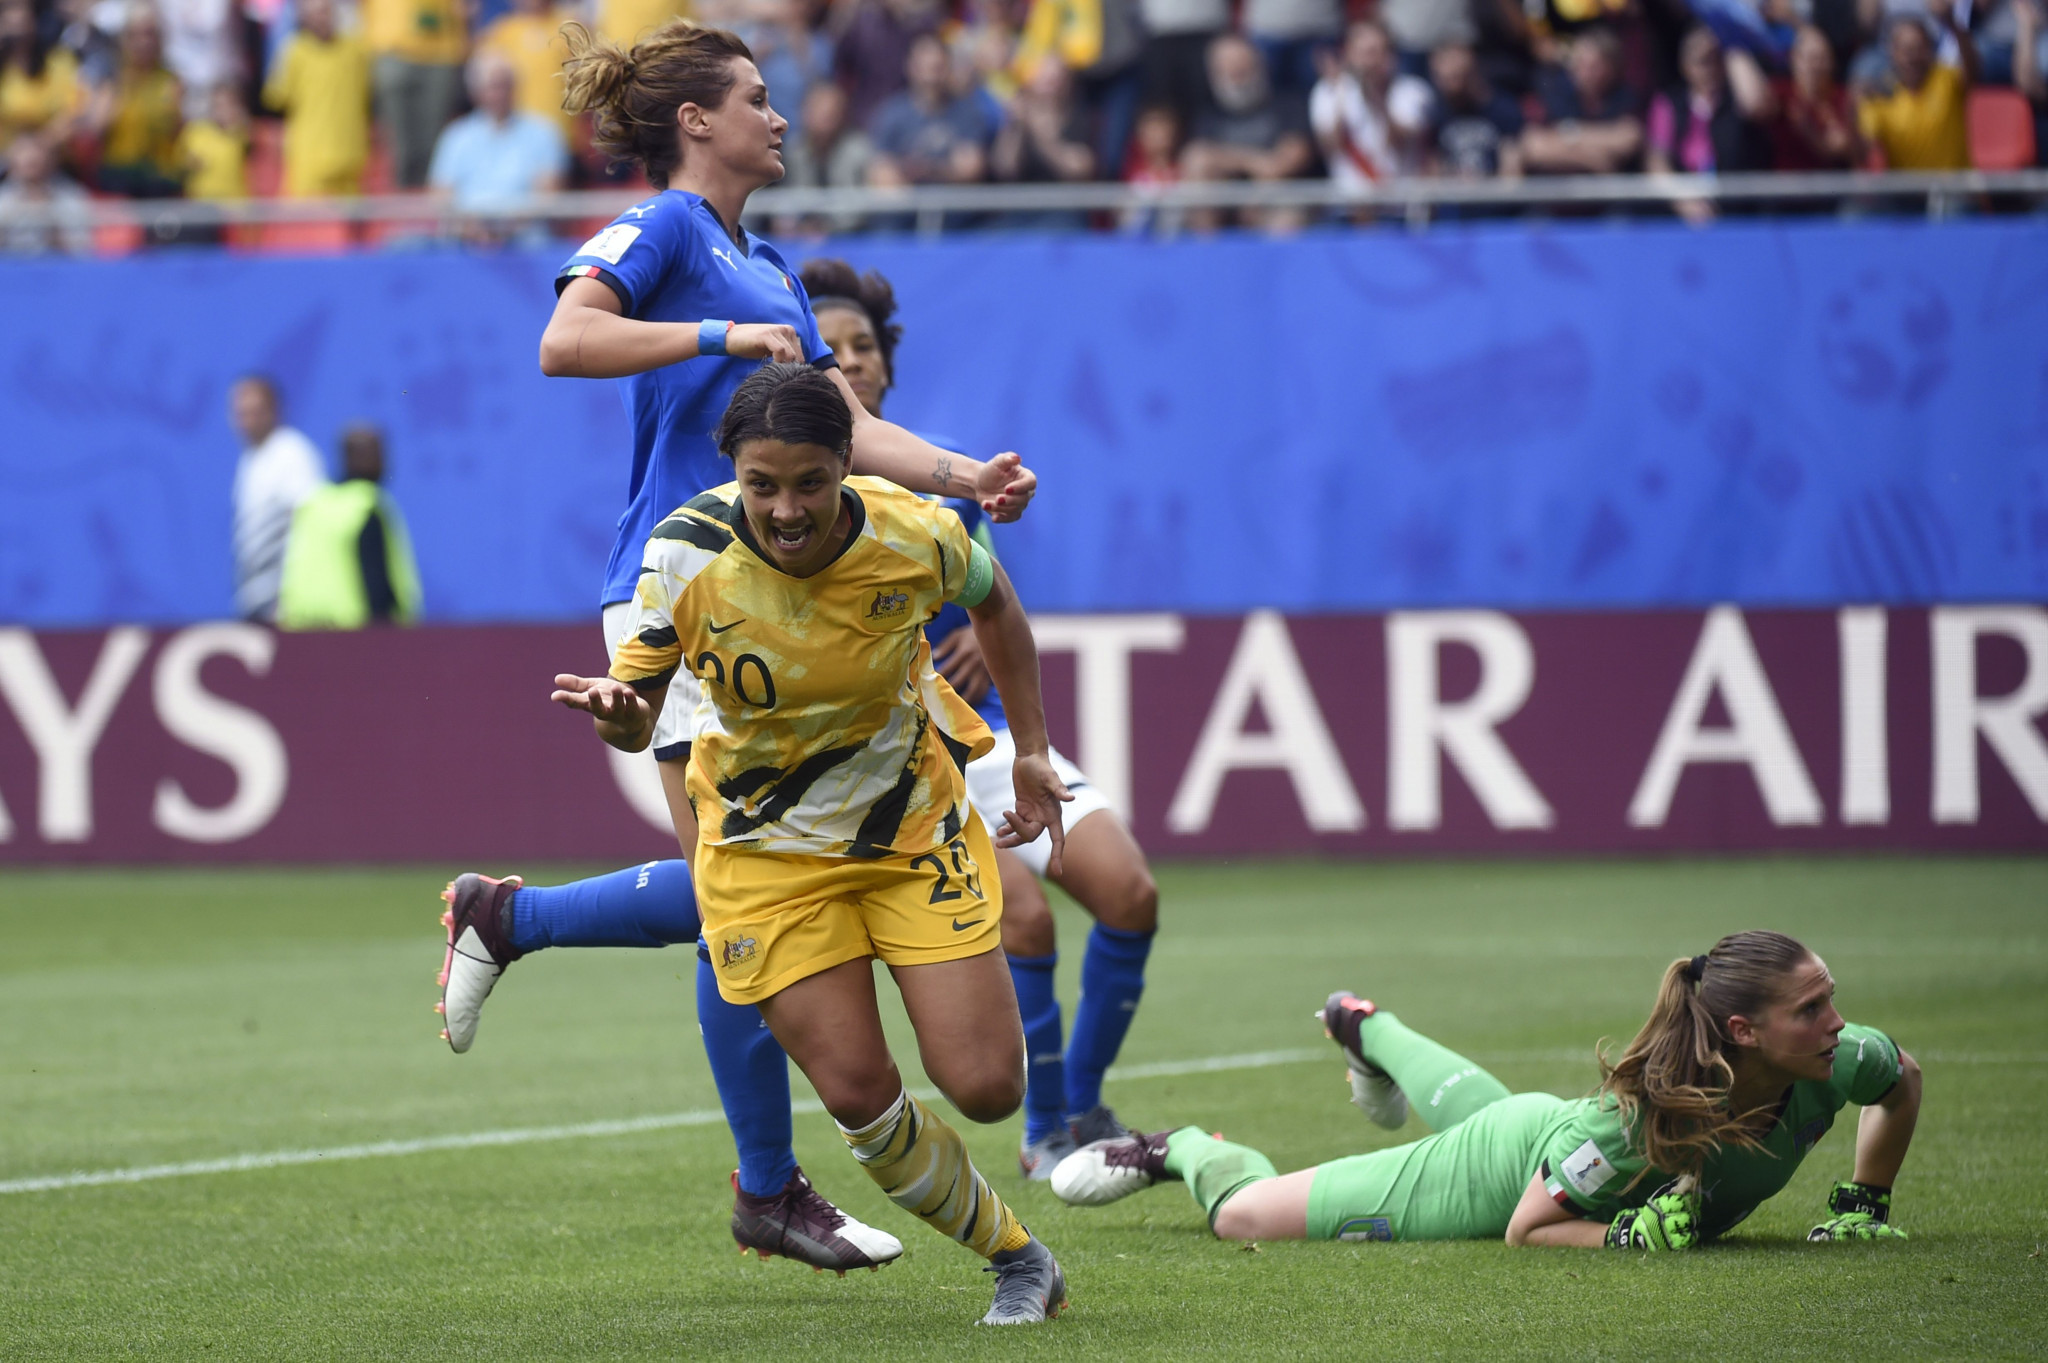 Italy upset Australia in FIFA Women's World Cup as Brazil and England record opening victories